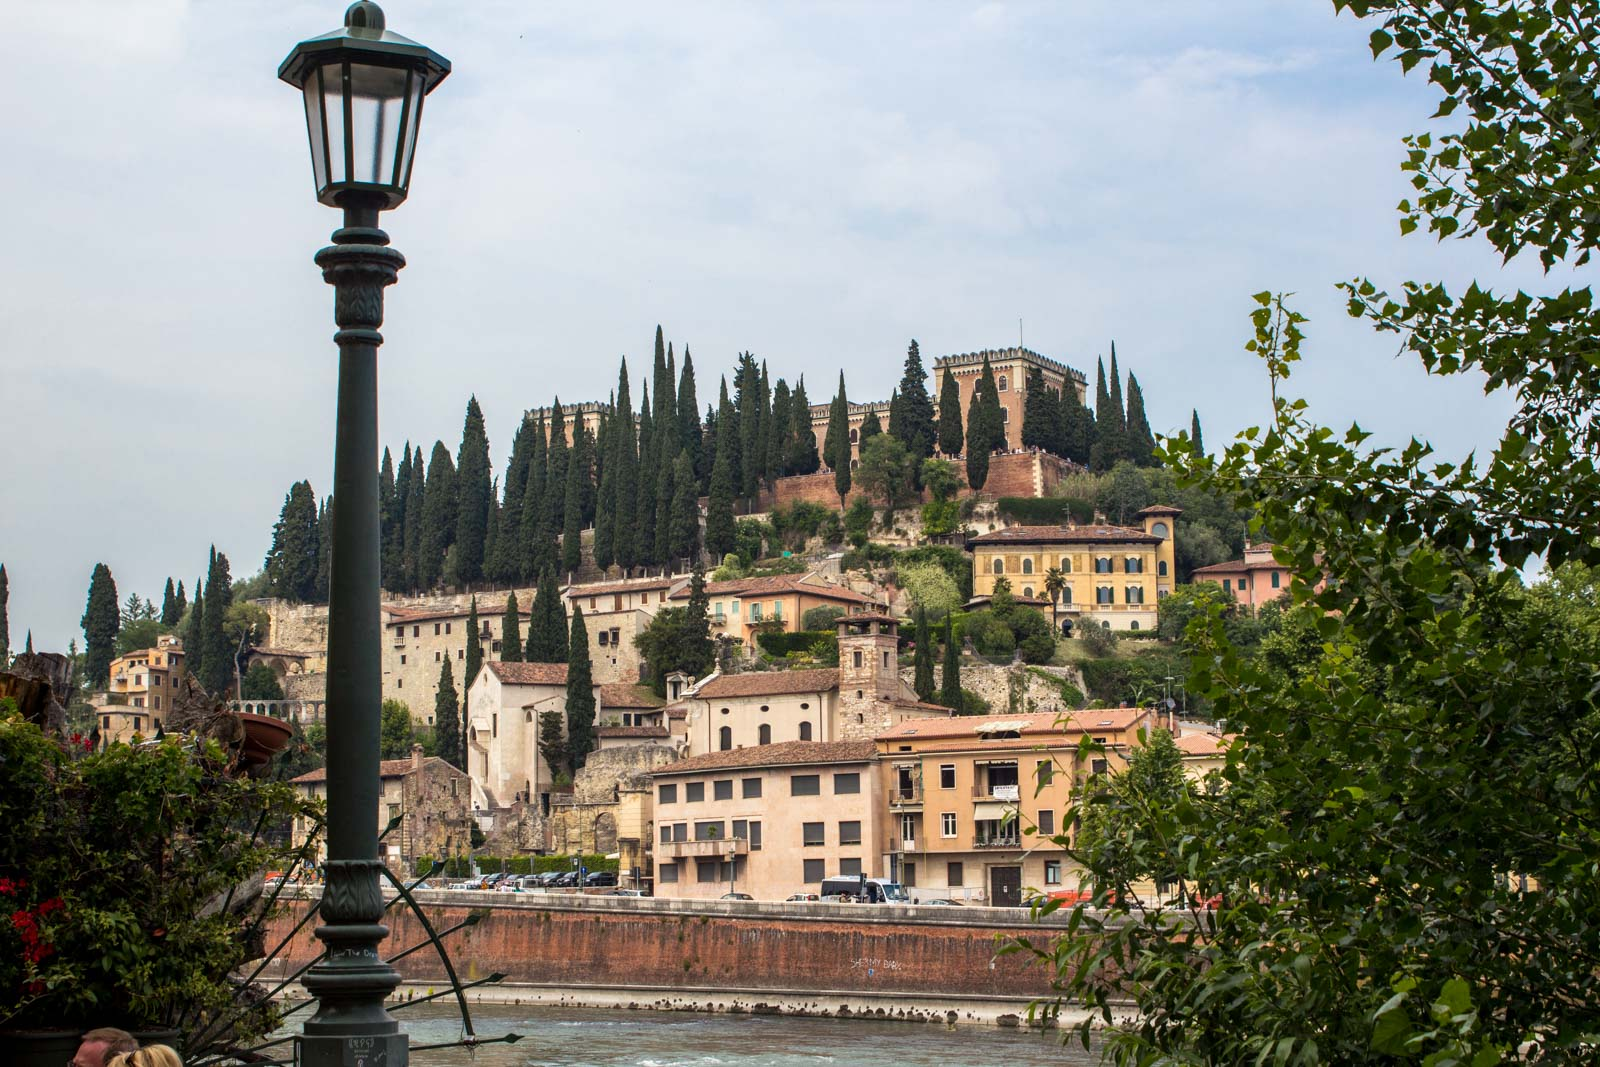 World Heritage Site of Verona, Italy